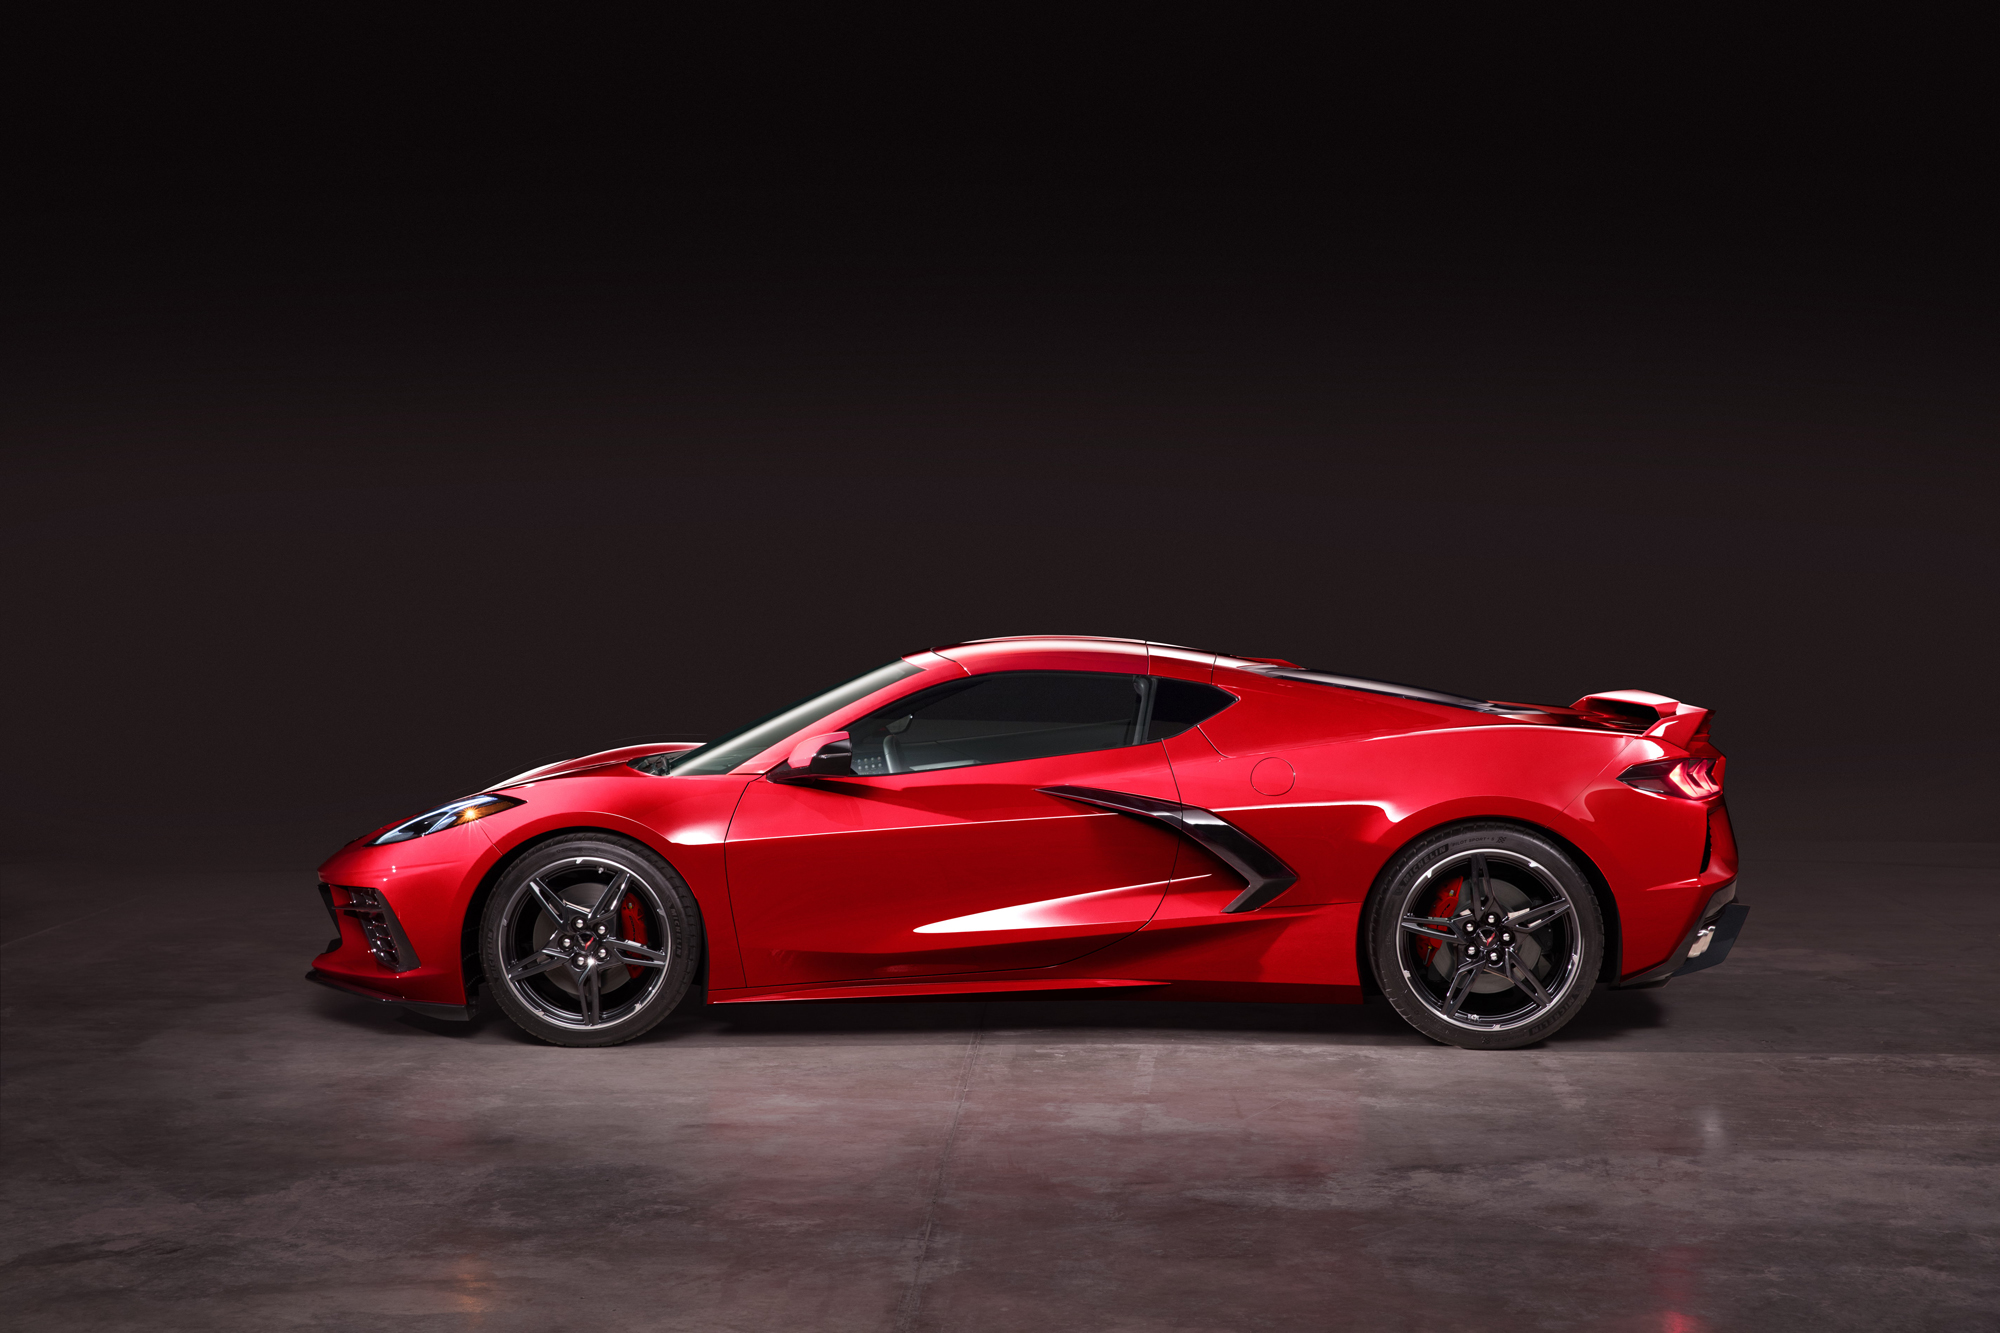 75 Great 2020 Chevrolet Corvette Images Research New by 2020 Chevrolet Corvette Images